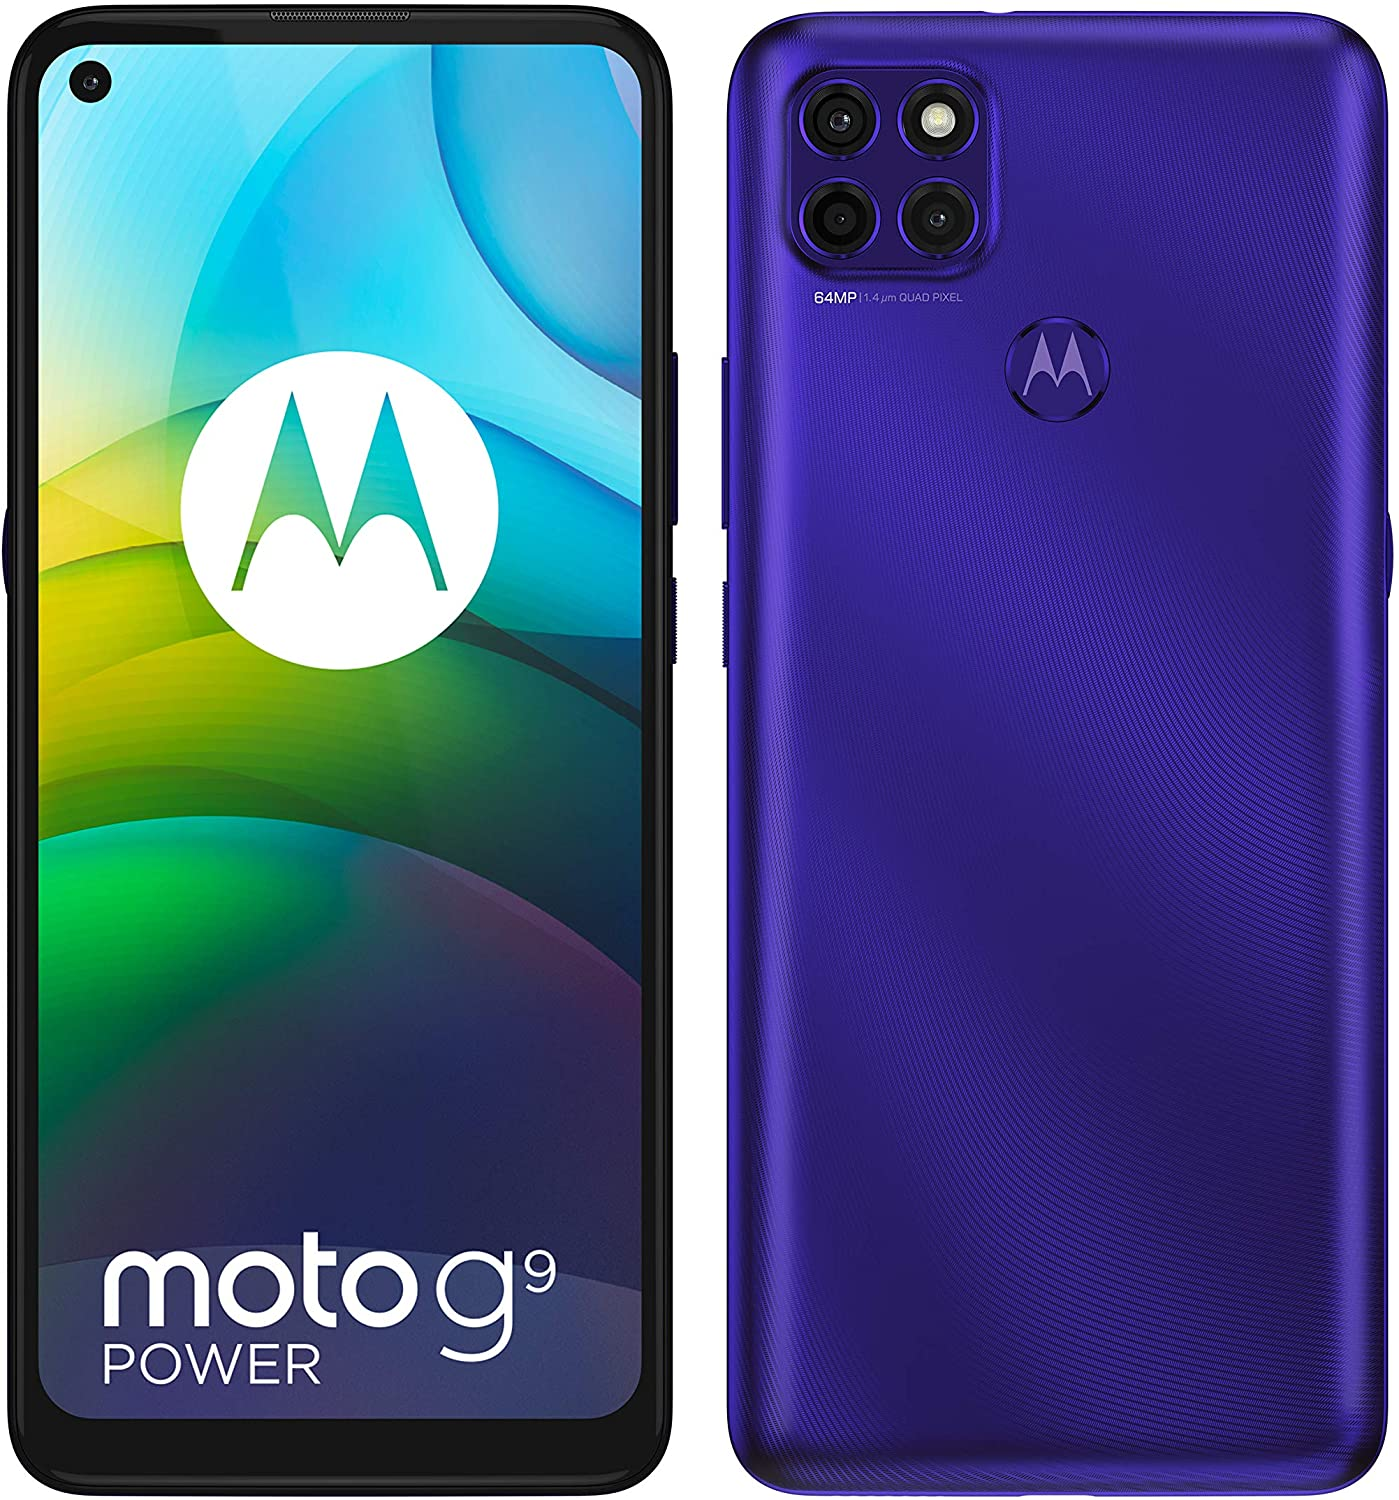 Motorola Moto G9 Power Dual-SIM 128GB ROM + 4GB RAM (GSM Only | No CDMA) Factory Unlocked Android Smartphone (Electric Violet) - International Version